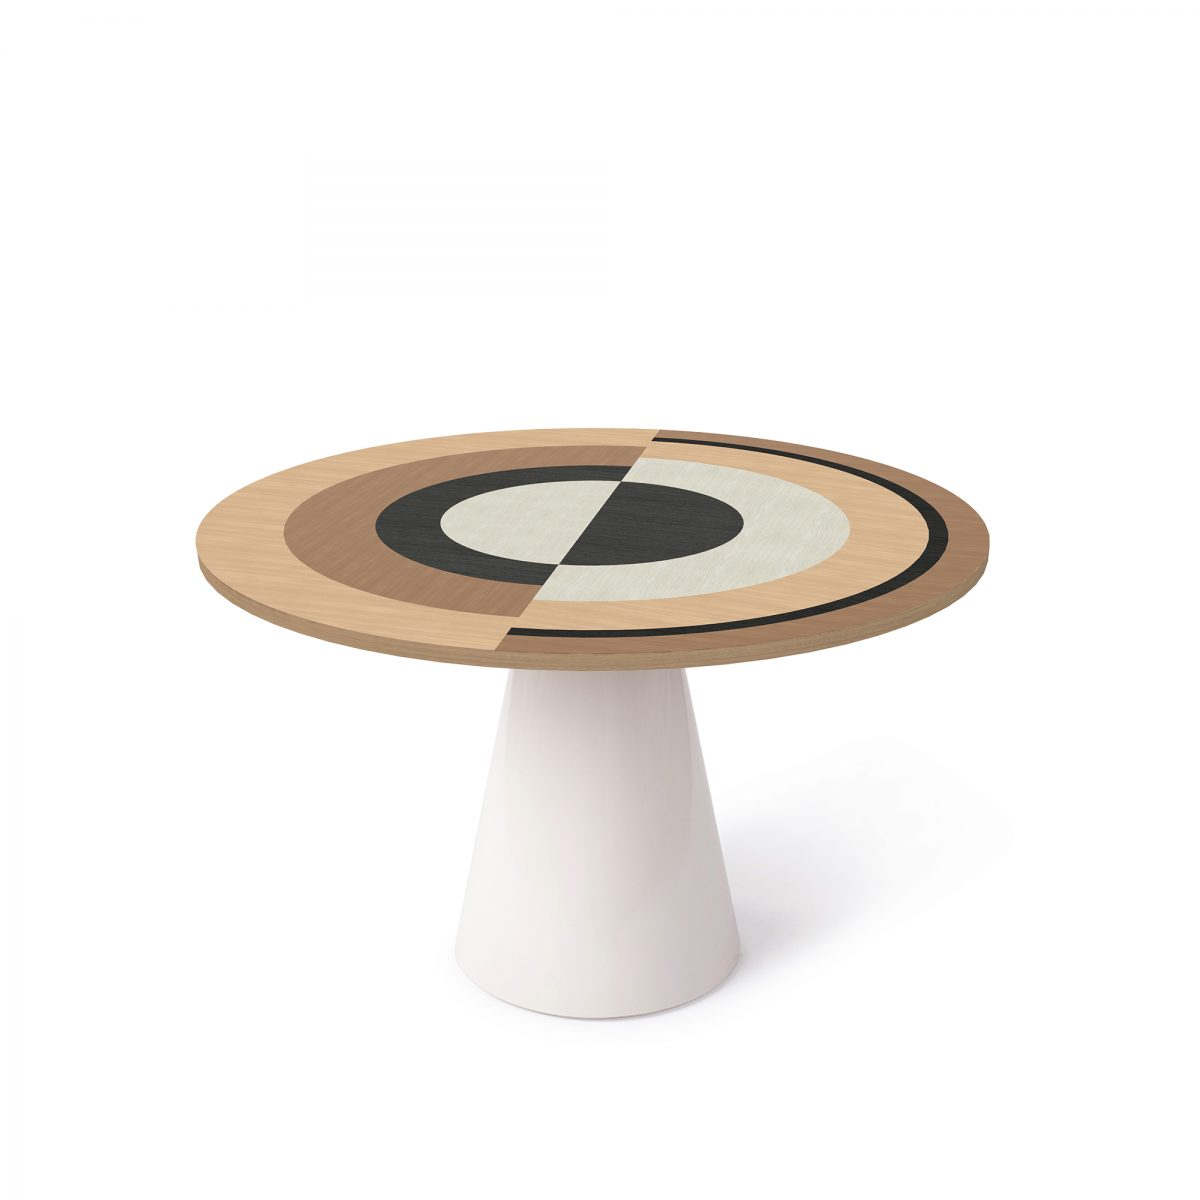 sonia-et-caetera-1-circle-tables-dining-tables-marquetry-M1